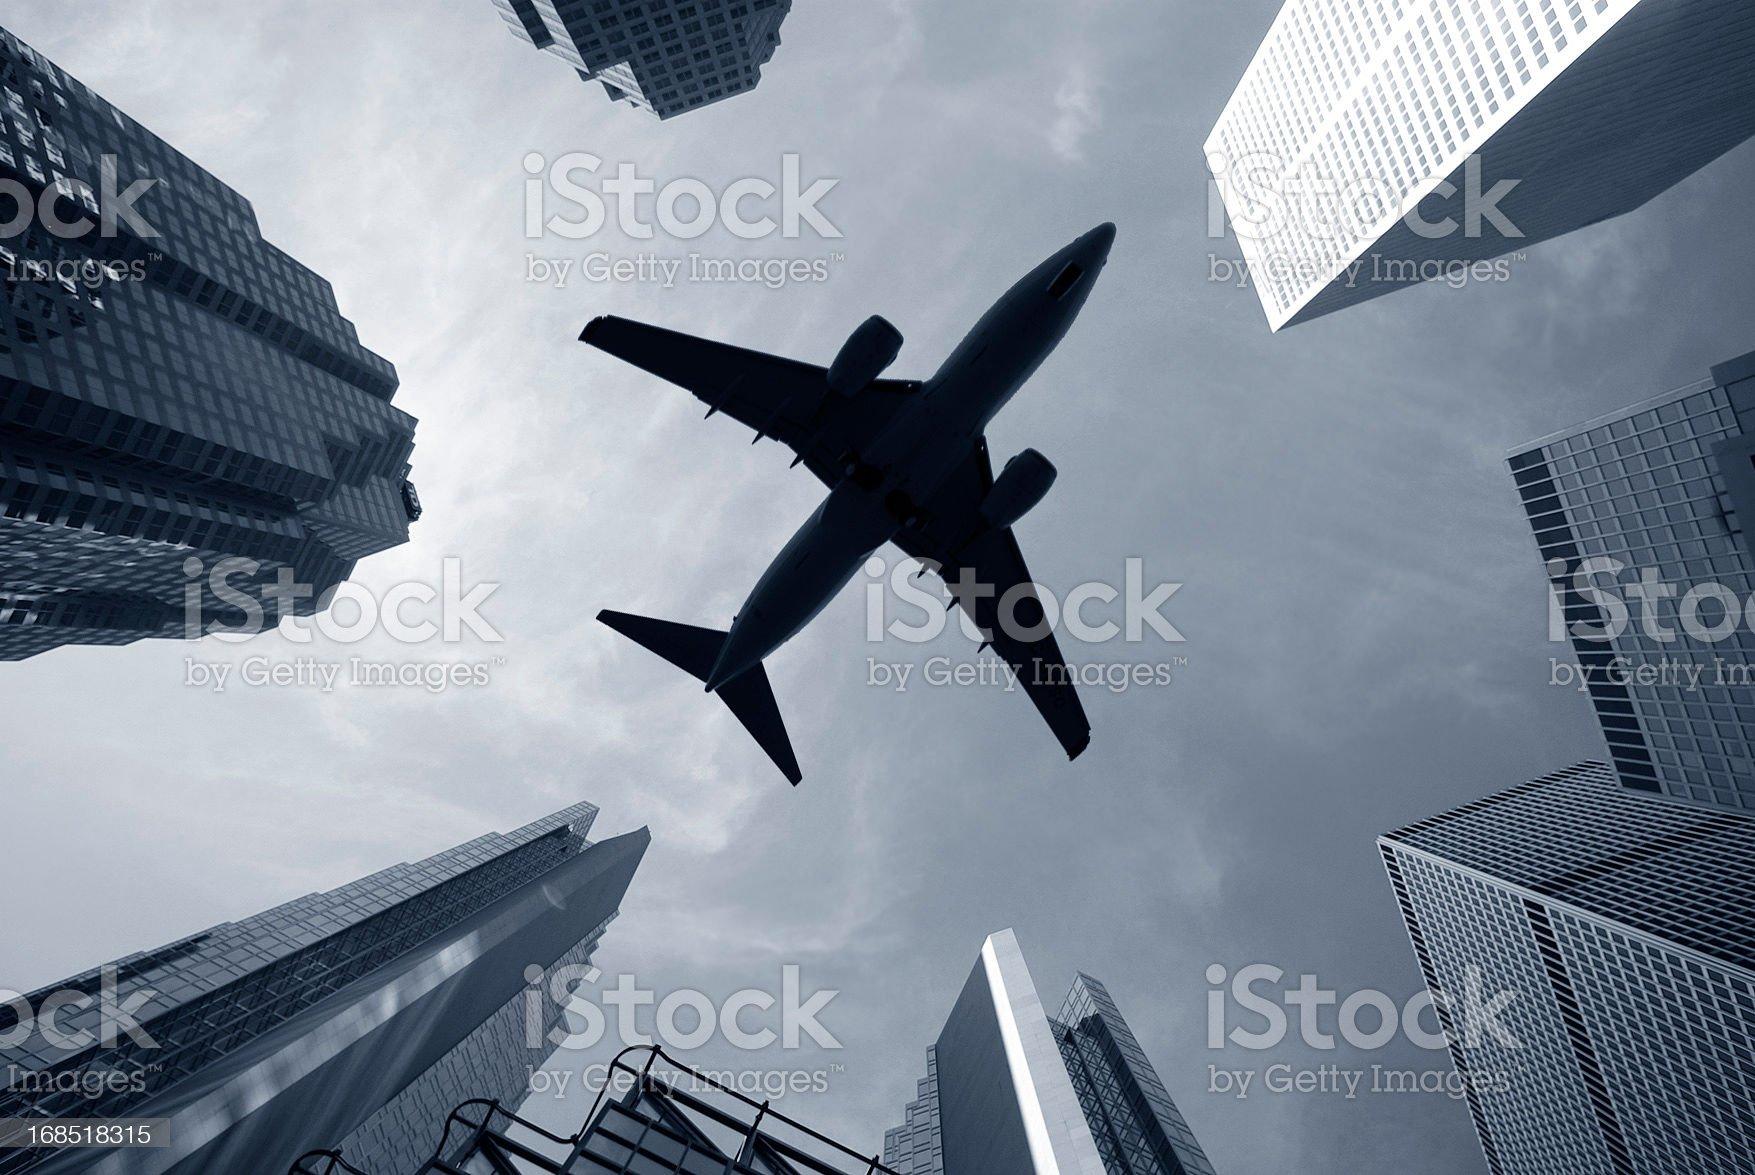 jet takes off over city skyscapers royalty-free stock photo